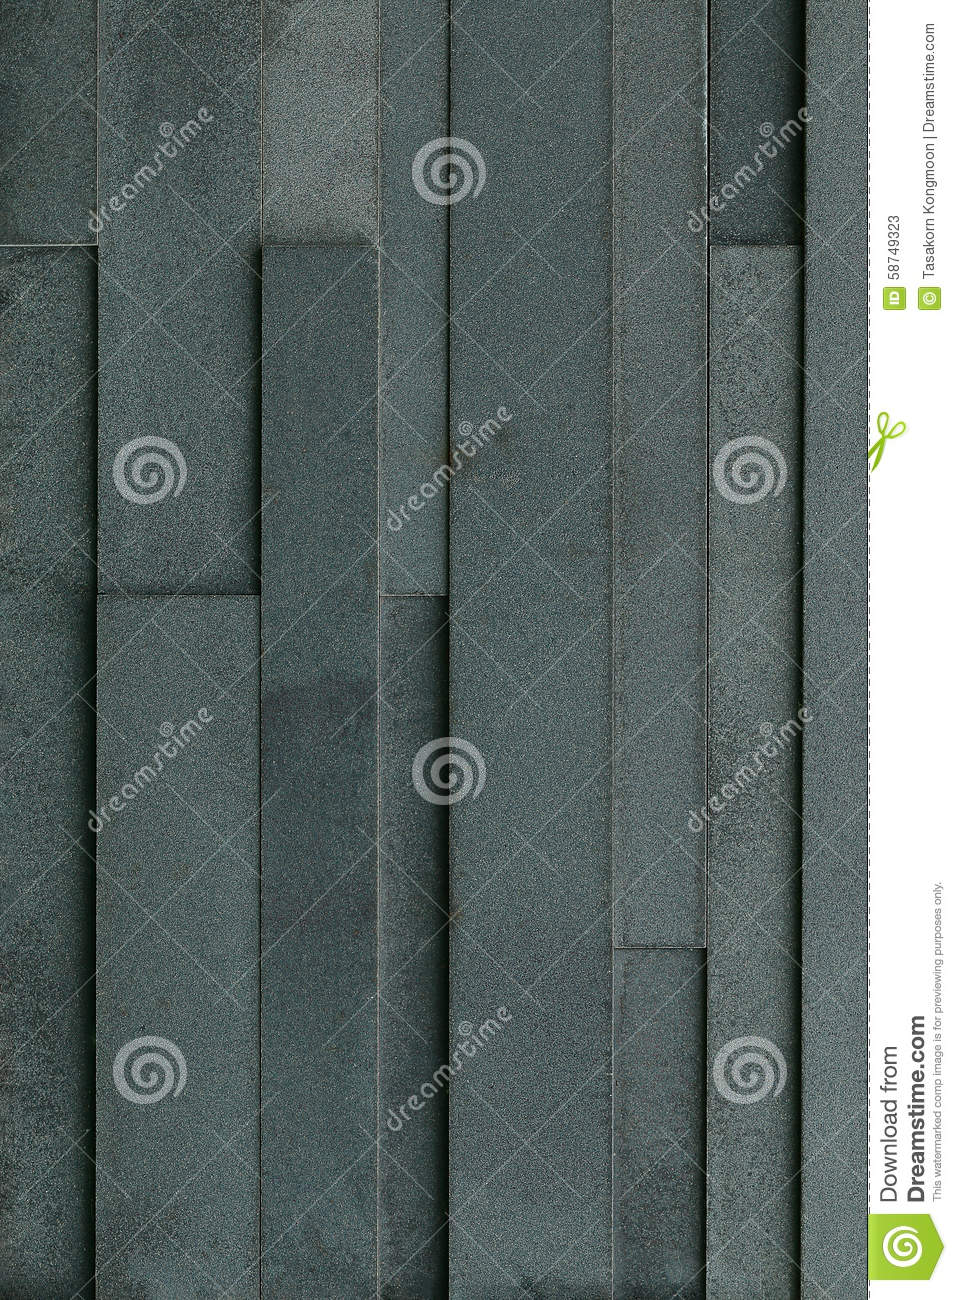 Black Slate Patter : Black slate brick wall for pattern and background stock